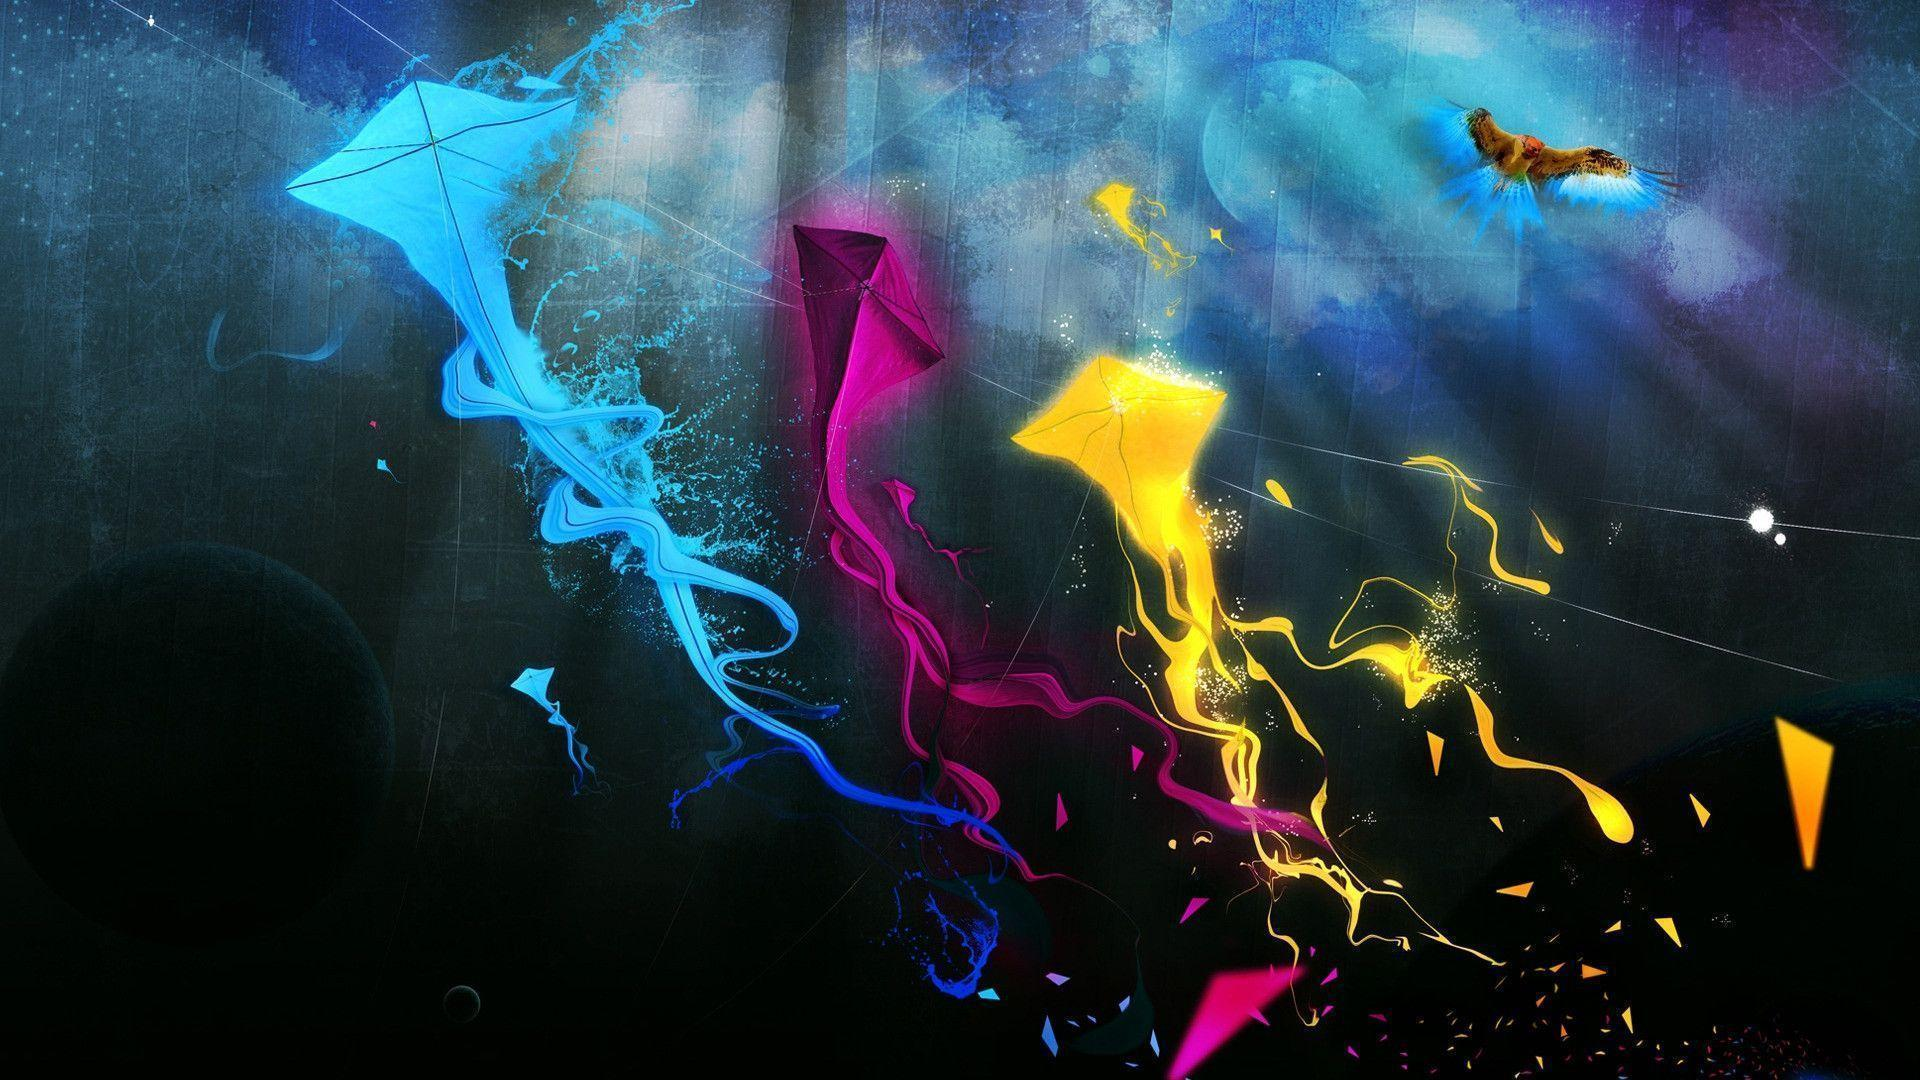 Cool Wallpapers Hd 1080p For Pc